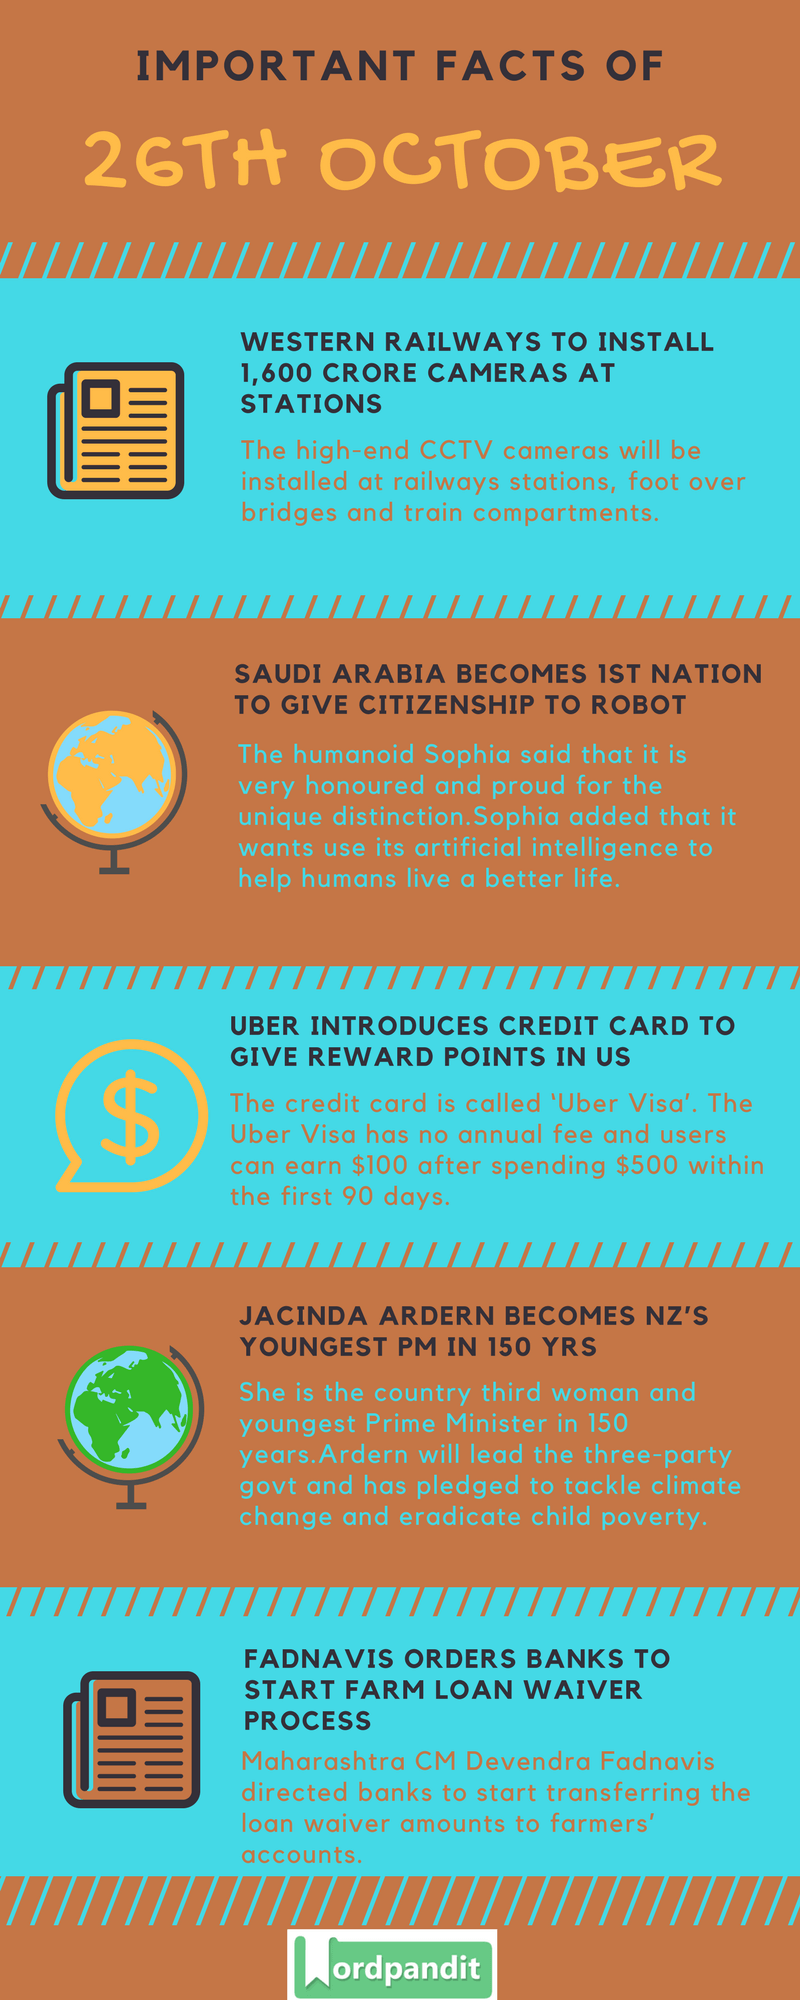 Daily-Current-Affairs-26-october-2017-Current-Affairs-Quiz-october-26-2017-Current-Affairs-Infographic